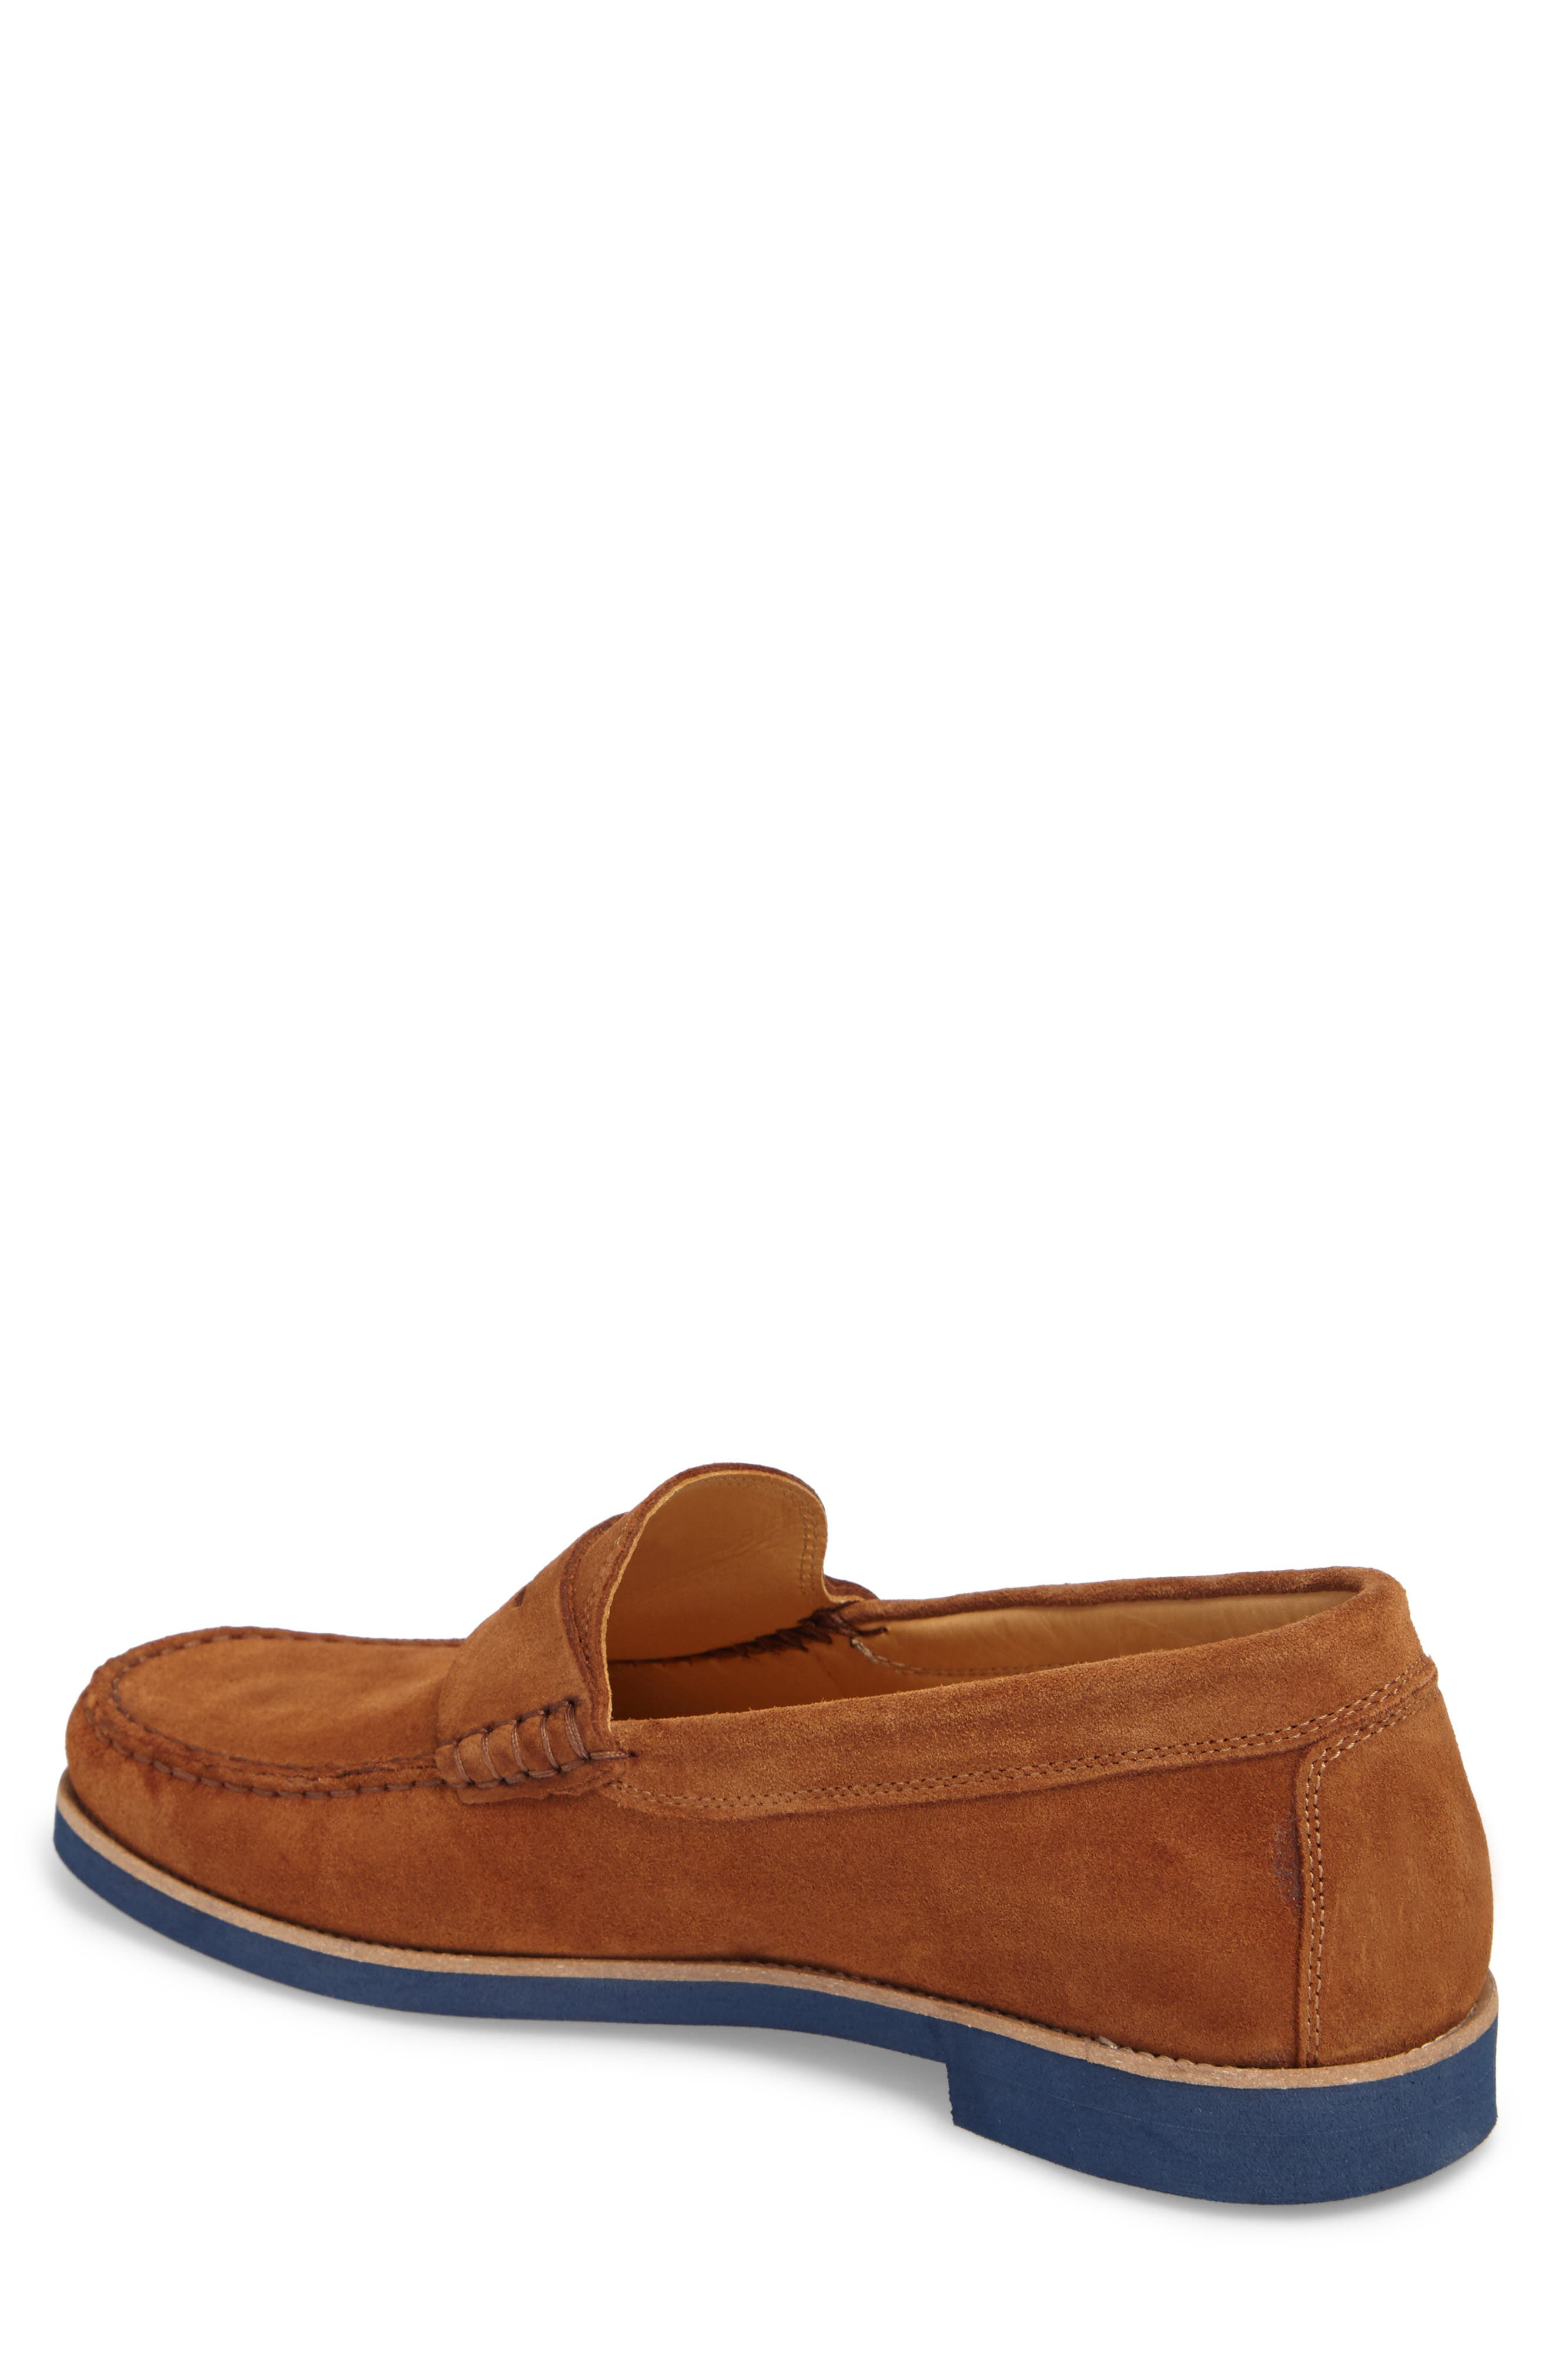 Kennedy Penny Loafer,                             Alternate thumbnail 2, color,                             MEDIUM BROWN SUEDE